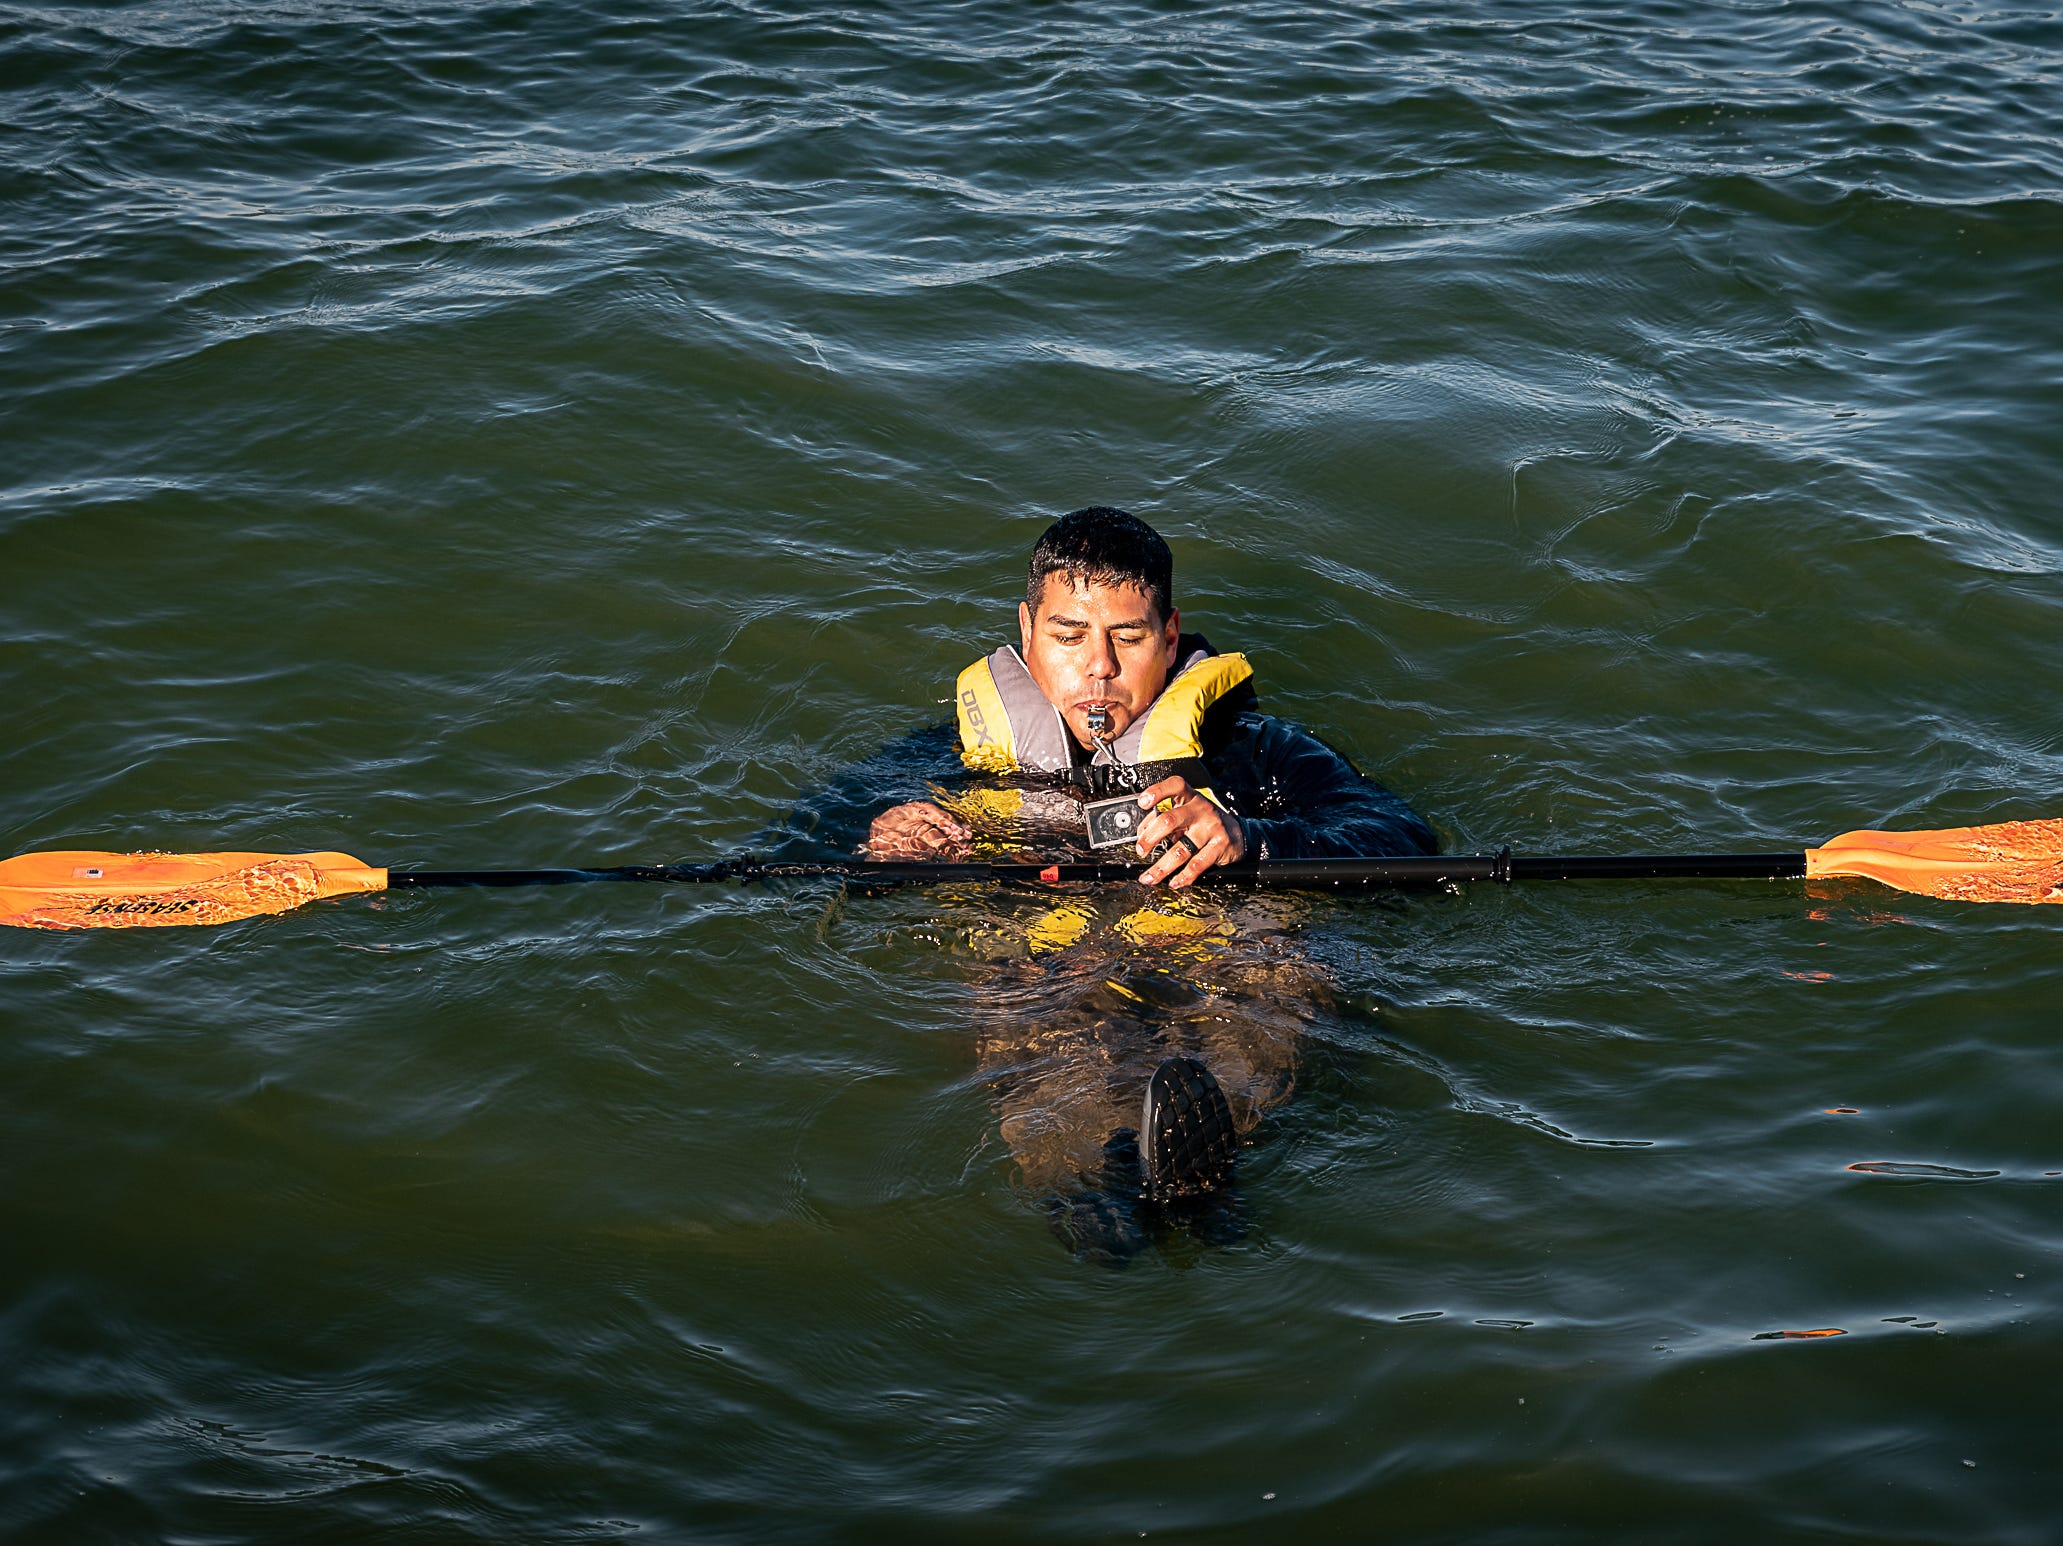 Petty Officer 1st Class Jose Termini uses a whistle and signal mirror as proper cold-water survival techniques during a Tuesday, Oct. 30, 2018 U.S. Coast Guard demonstration in Cape Charles, Virginia.